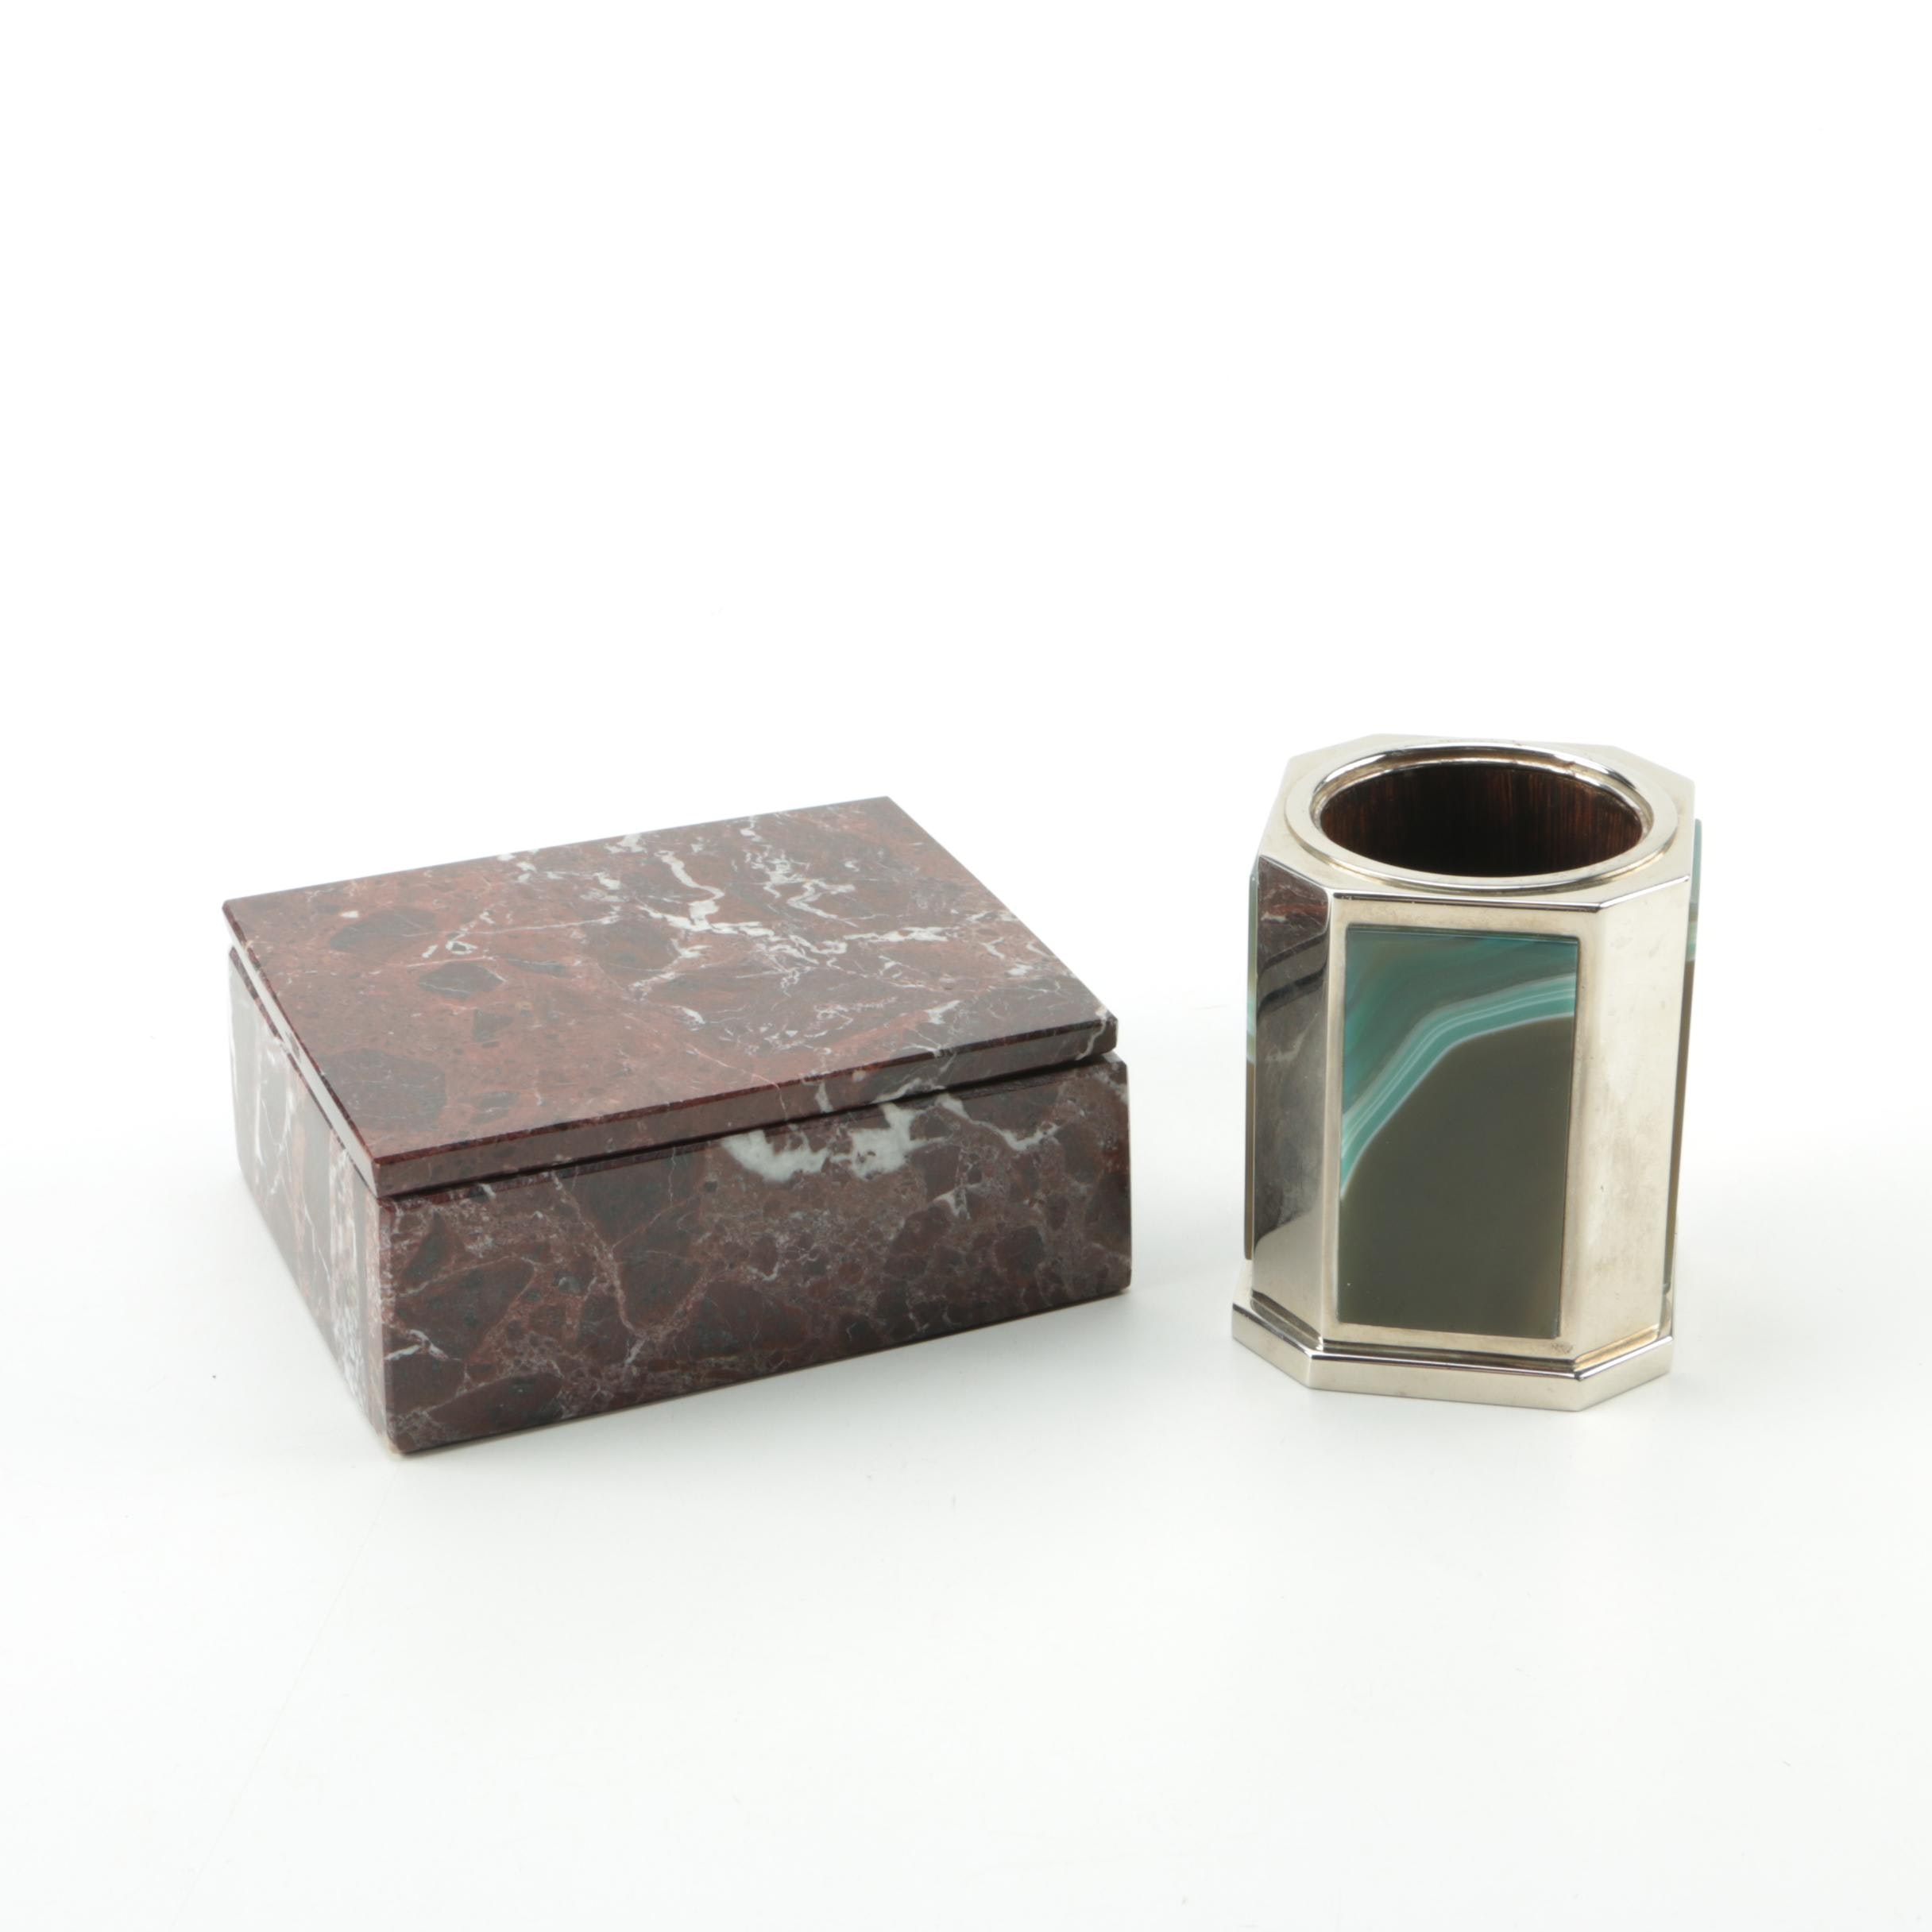 Marble and Agate Trinket Boxes